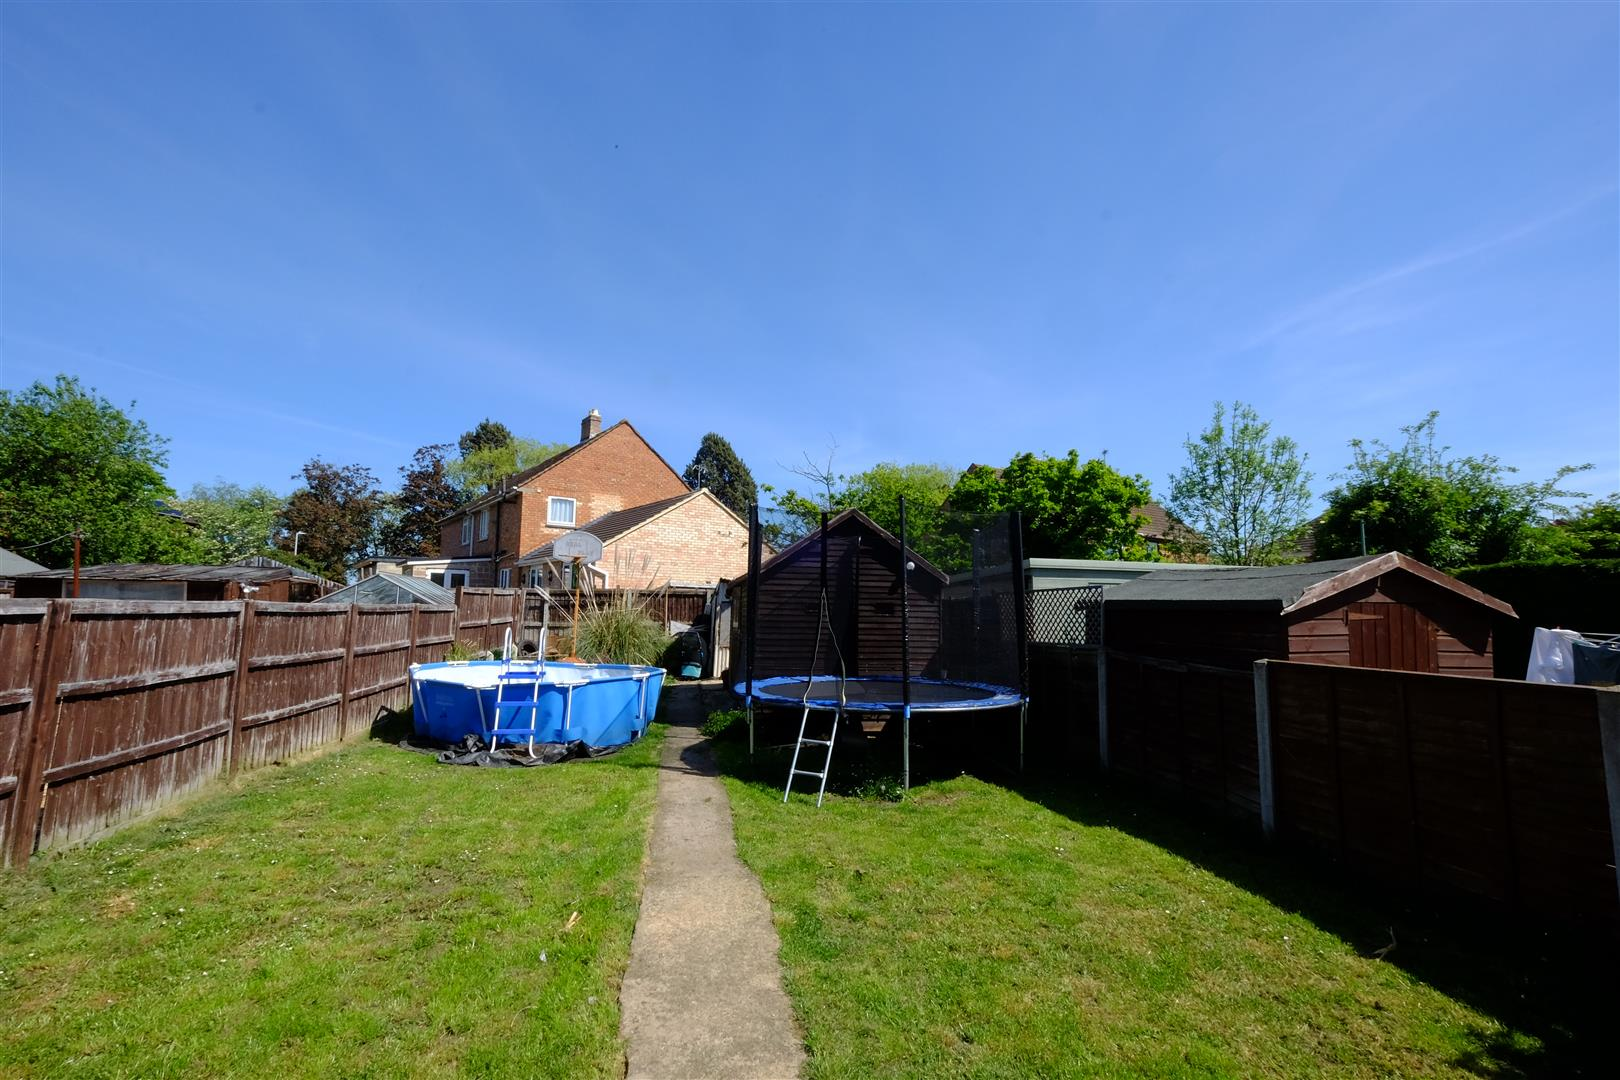 Images for DETACHED HOUSE FOR UPDATING - GL1 EAID:hollismoapi BID:11